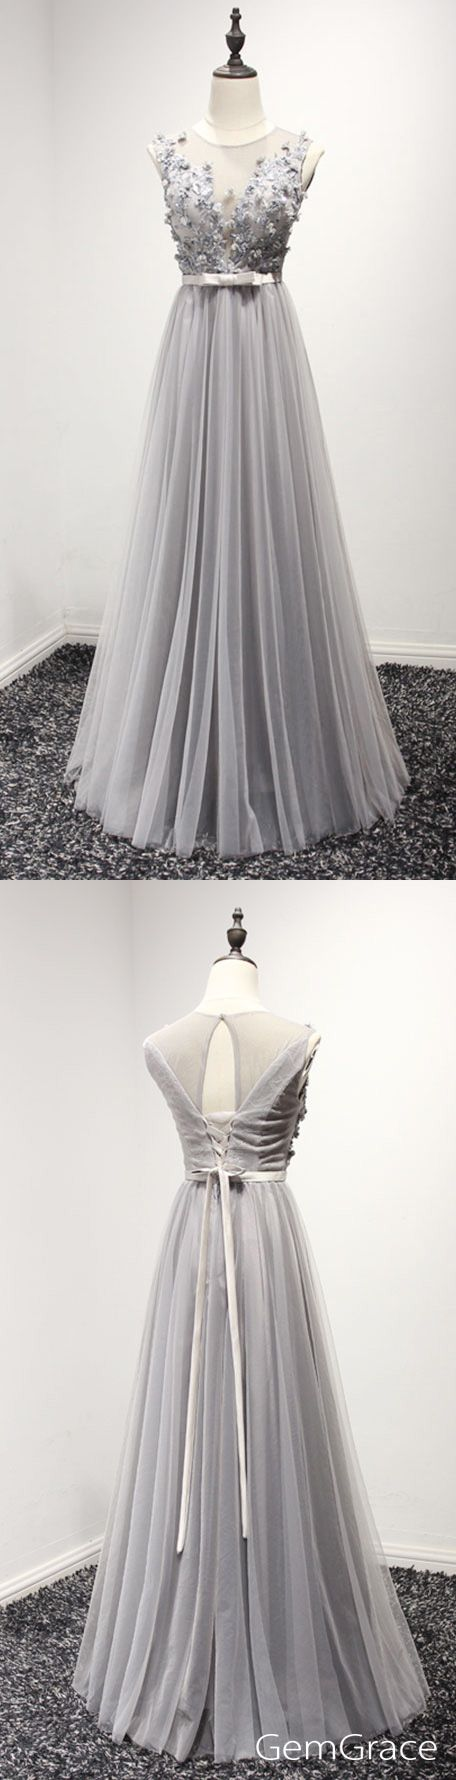 Modest grey long homecoming prom dresses aline tulle with beading